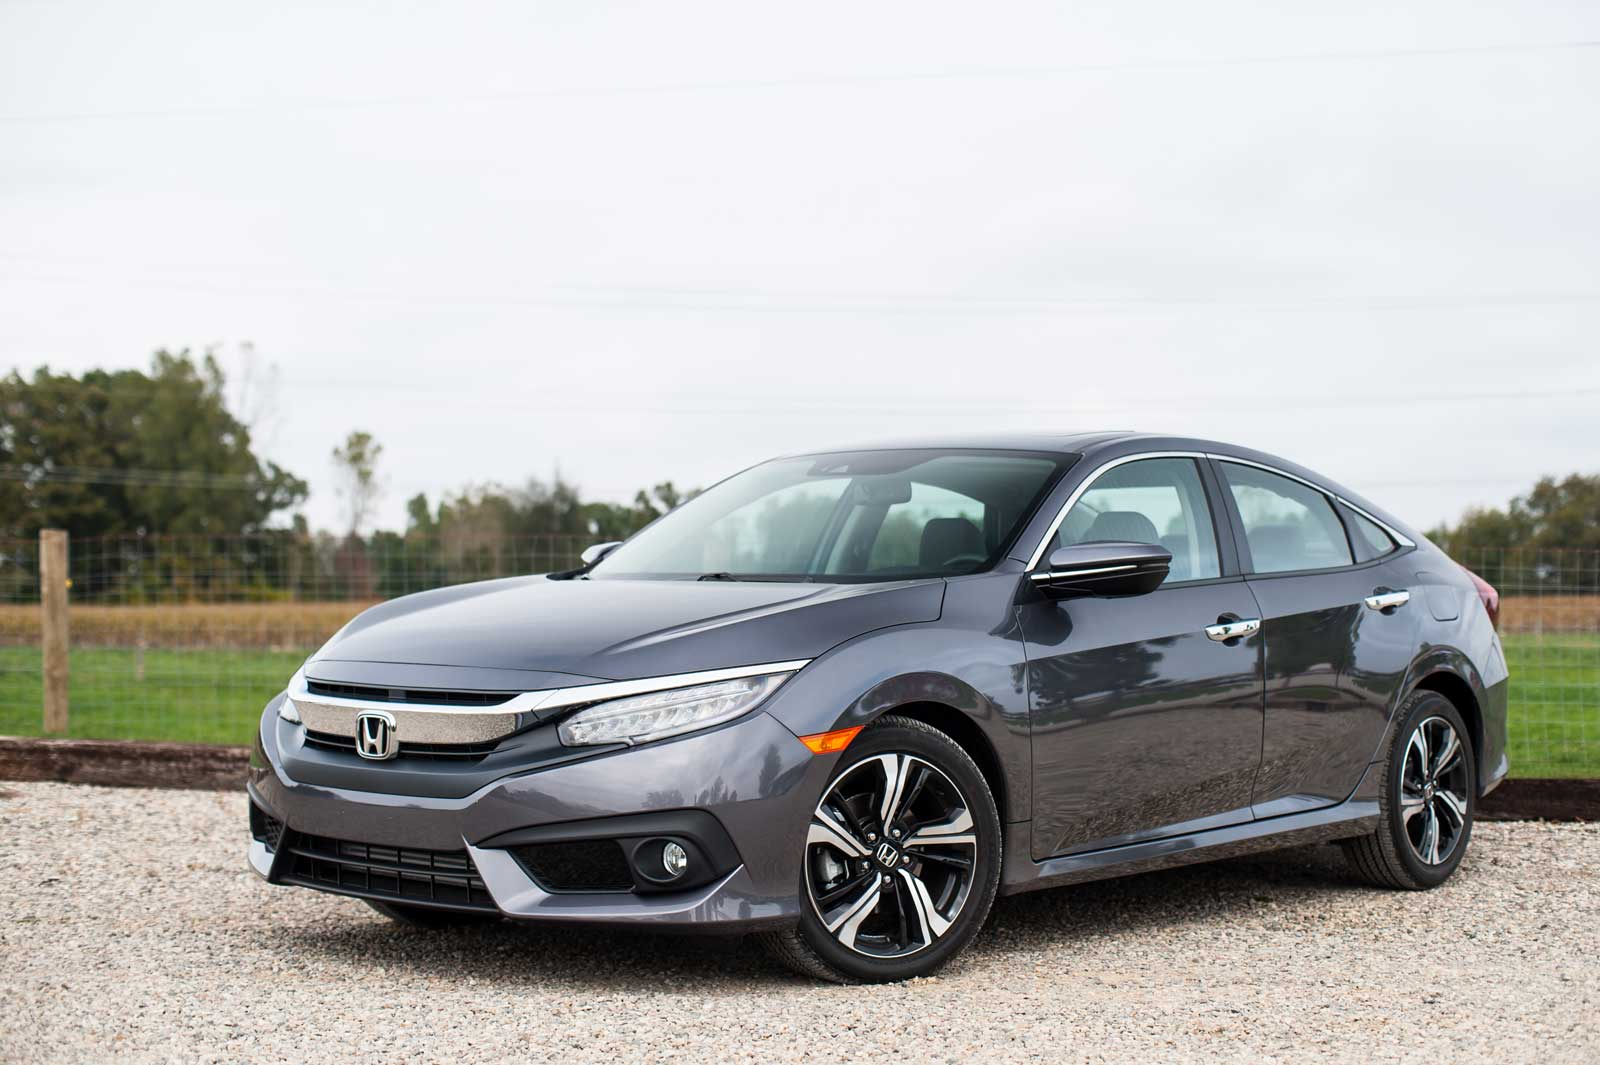 2016-Honda-Civic-Front-Three-Quarter